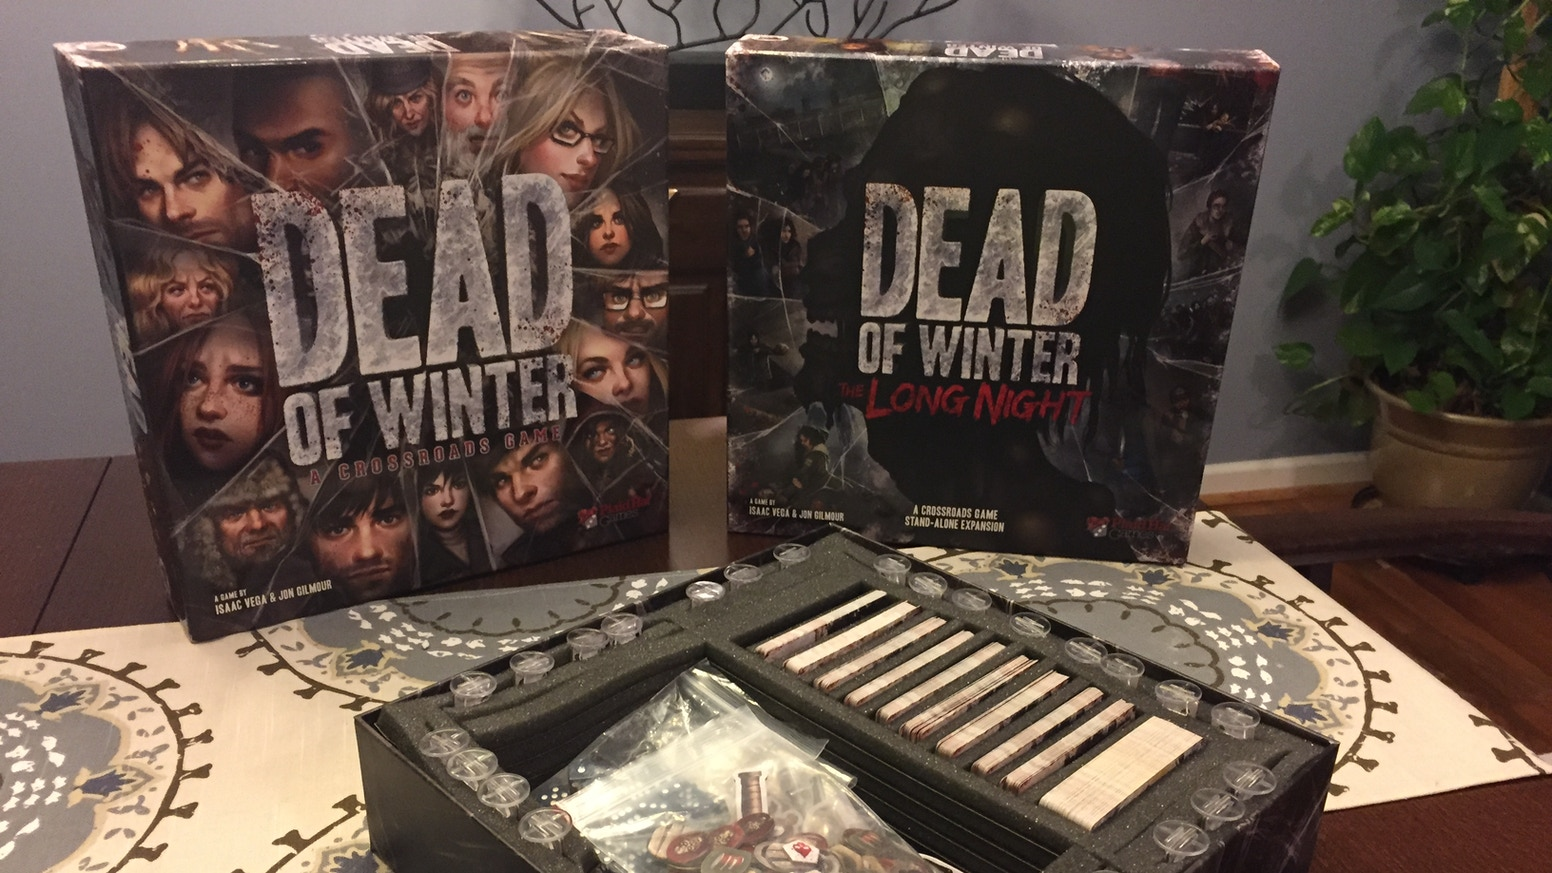 Foam insert for storing and organizing your components for Dead of Winter and Dead of Winter: The Long Night